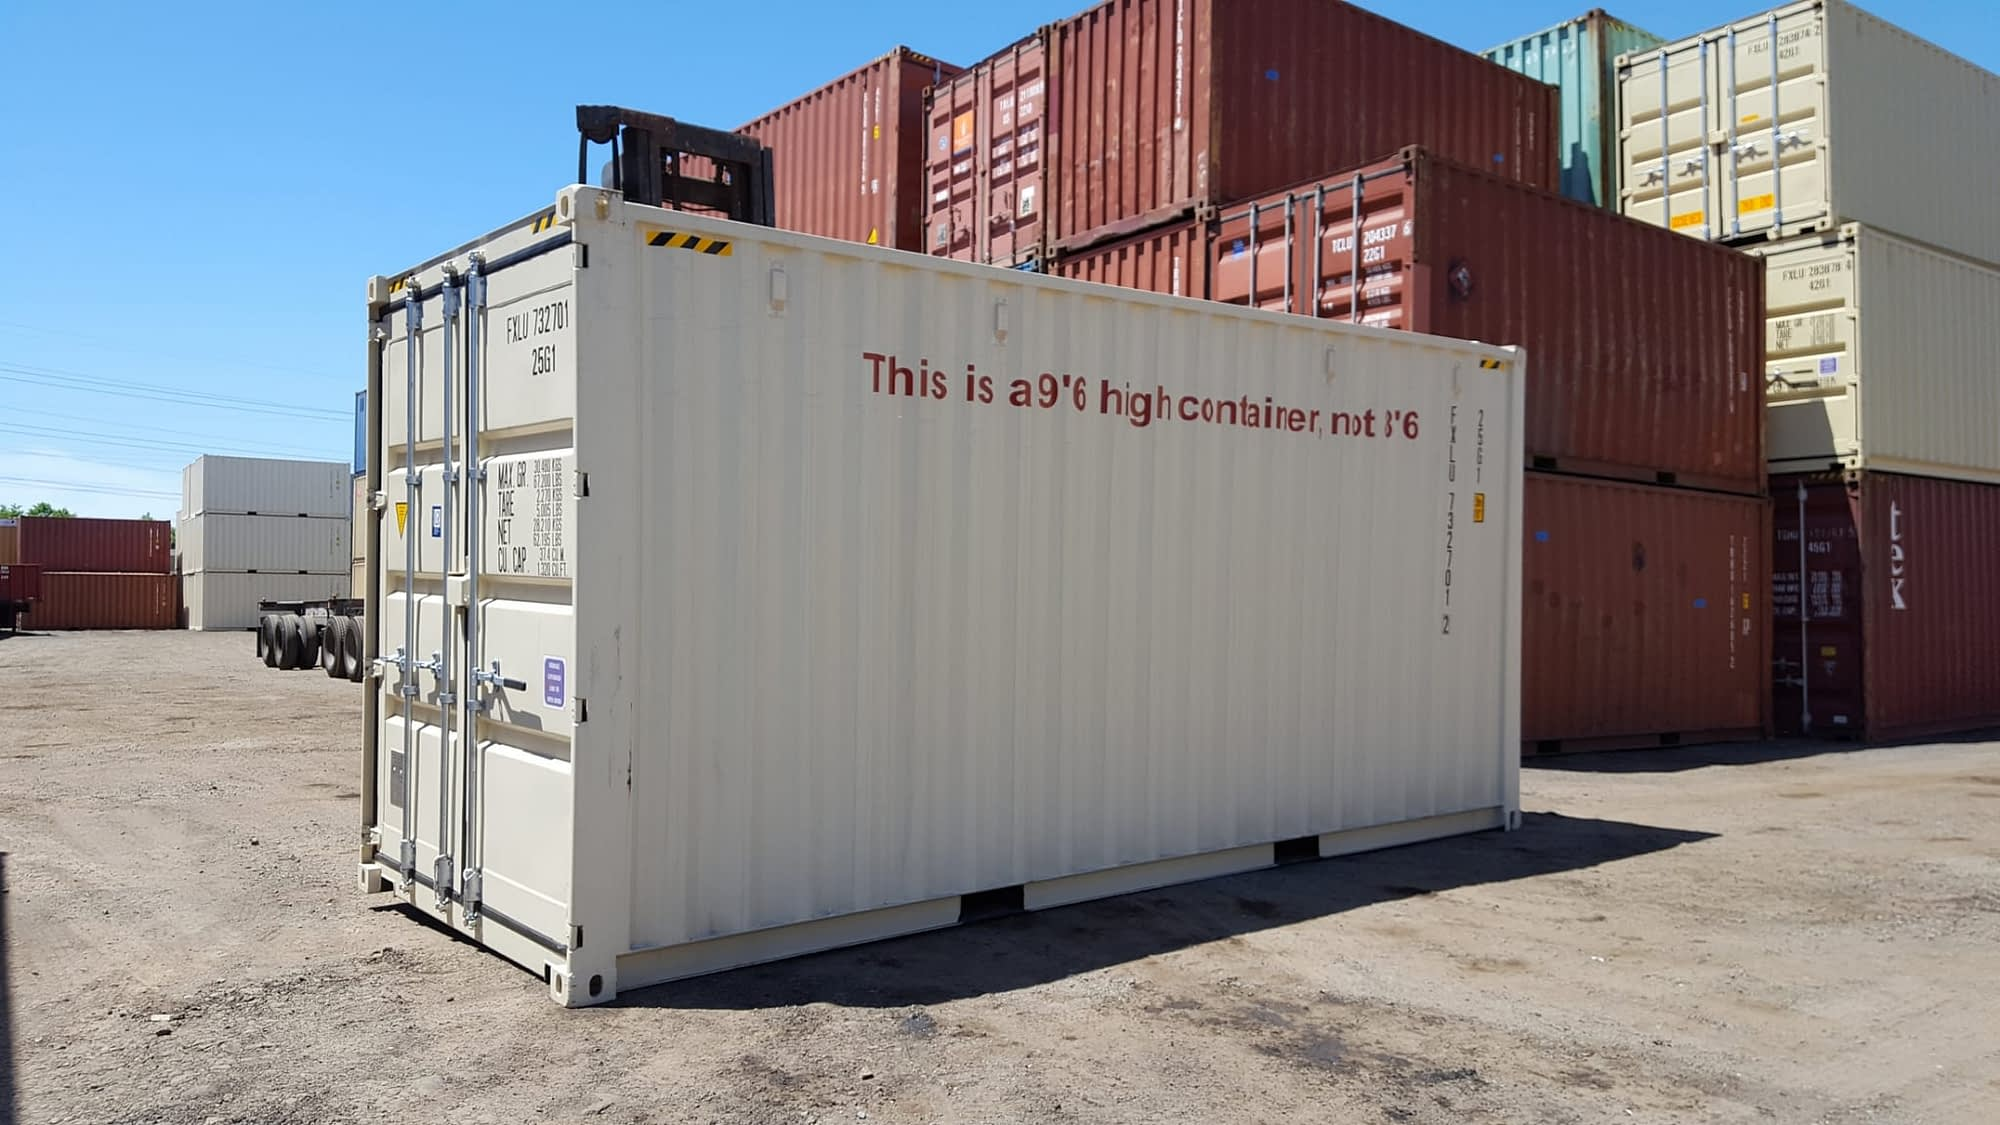 TRS Containers sells and fabricates new 20 foot highcube containers which cannot be mounted on a chassis